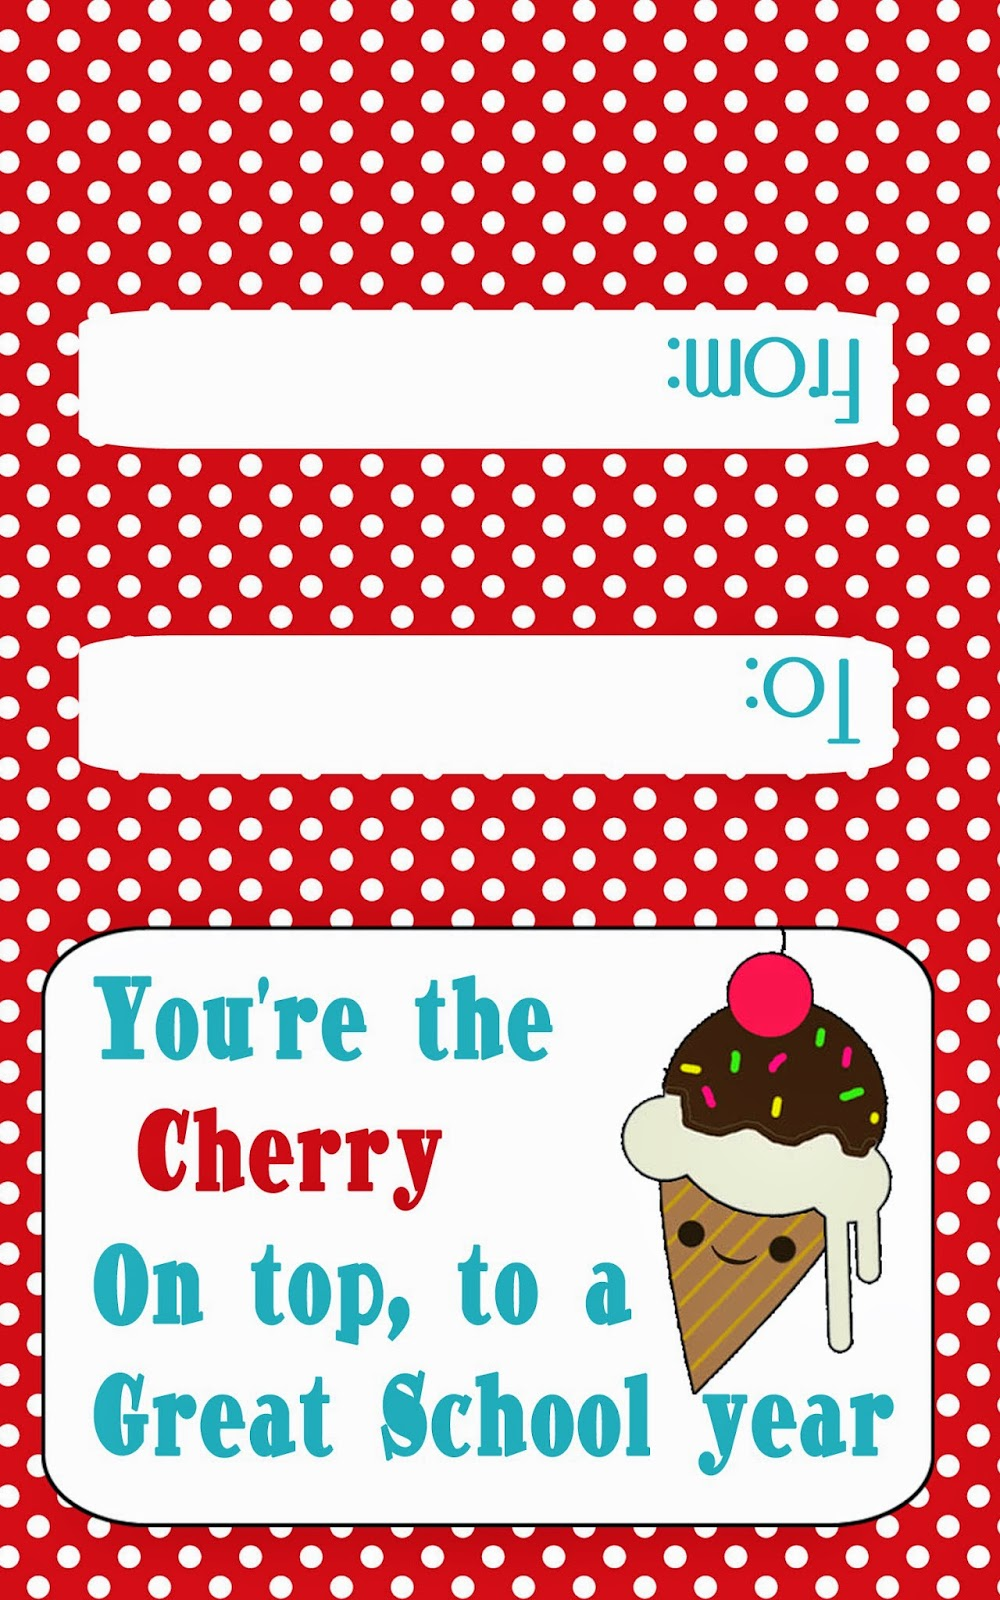 Free Ice Cream gift card printable for teachers www.freetimefrolics.com #teacher  #printable